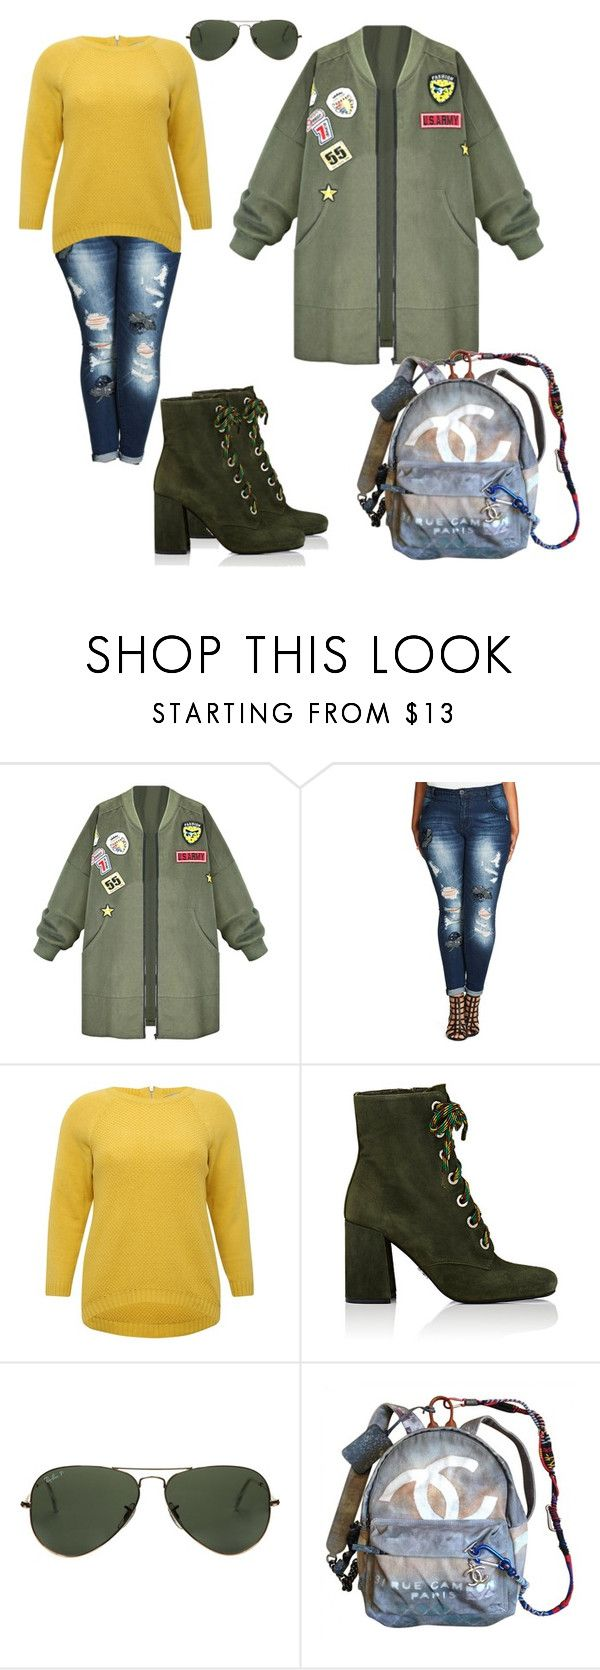 """Plus Size"" by repriza on Polyvore featuring мода, City Chic, M&Co, Prada, Ray-Ban, Chanel и plus size clothing"